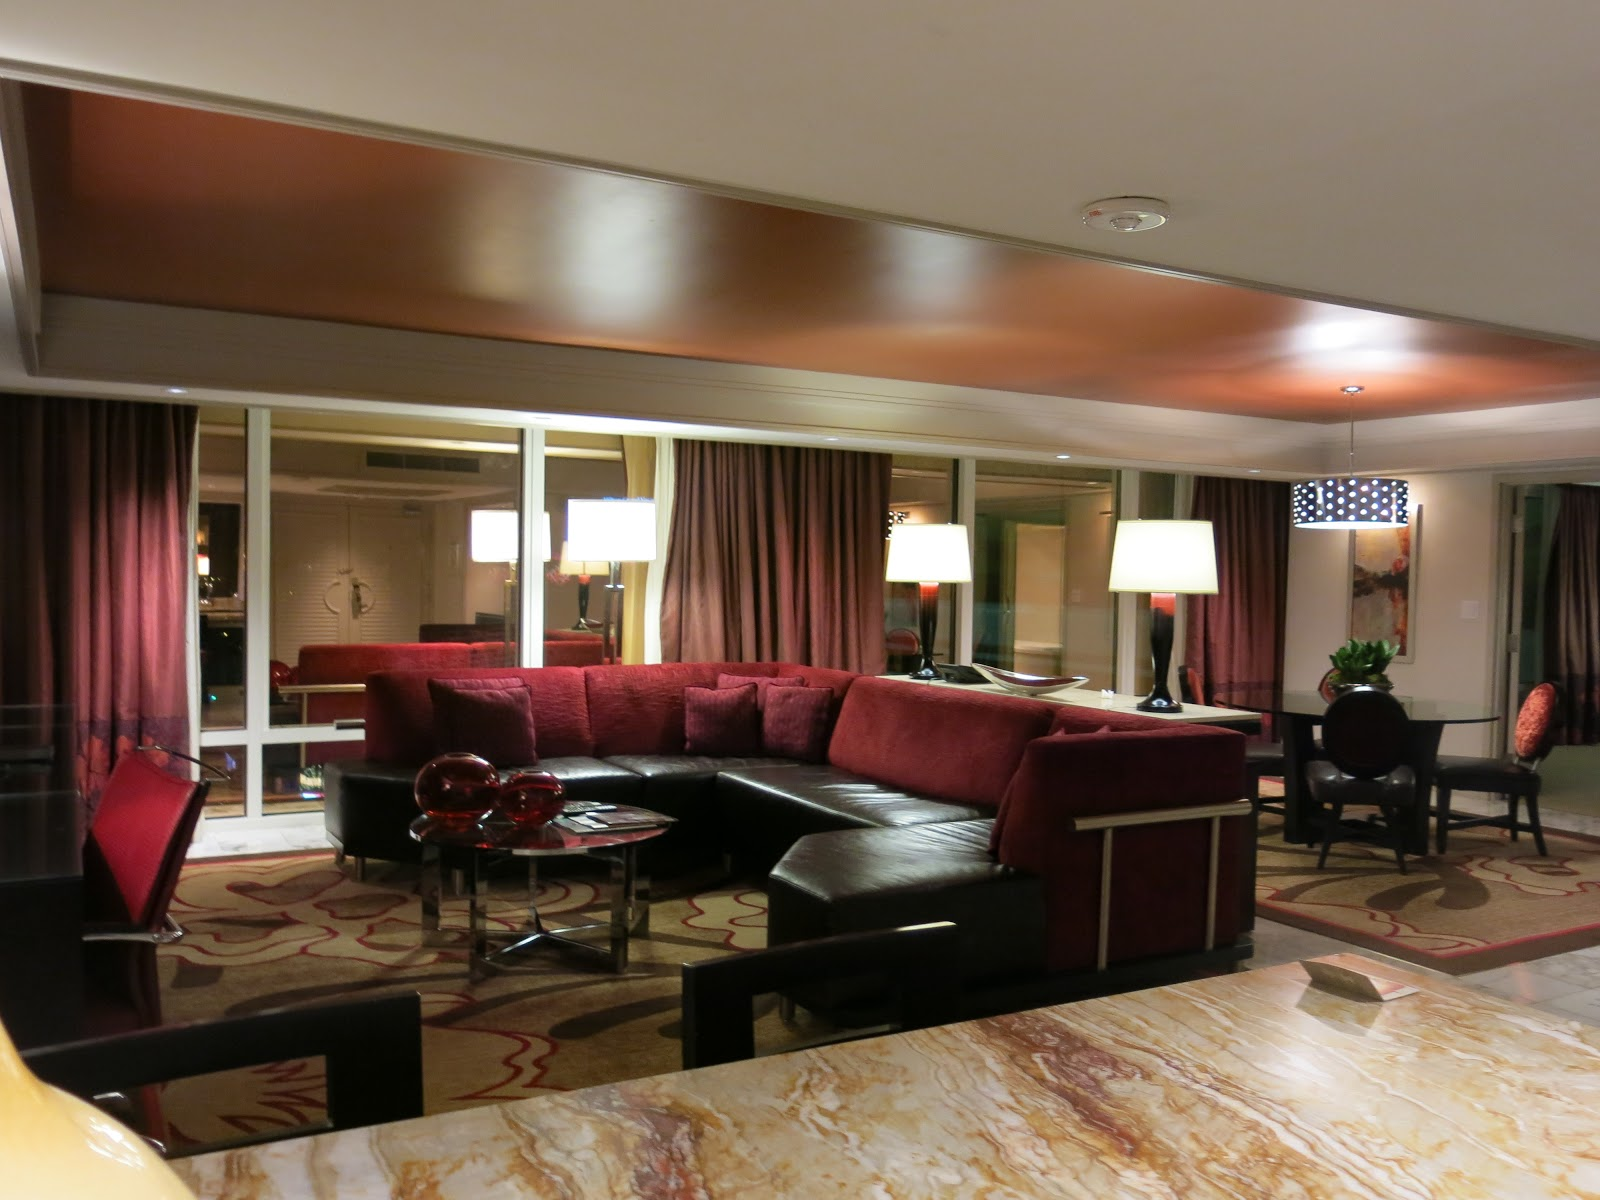 las vegas daze mirage one bedroom tower suite via myvegas